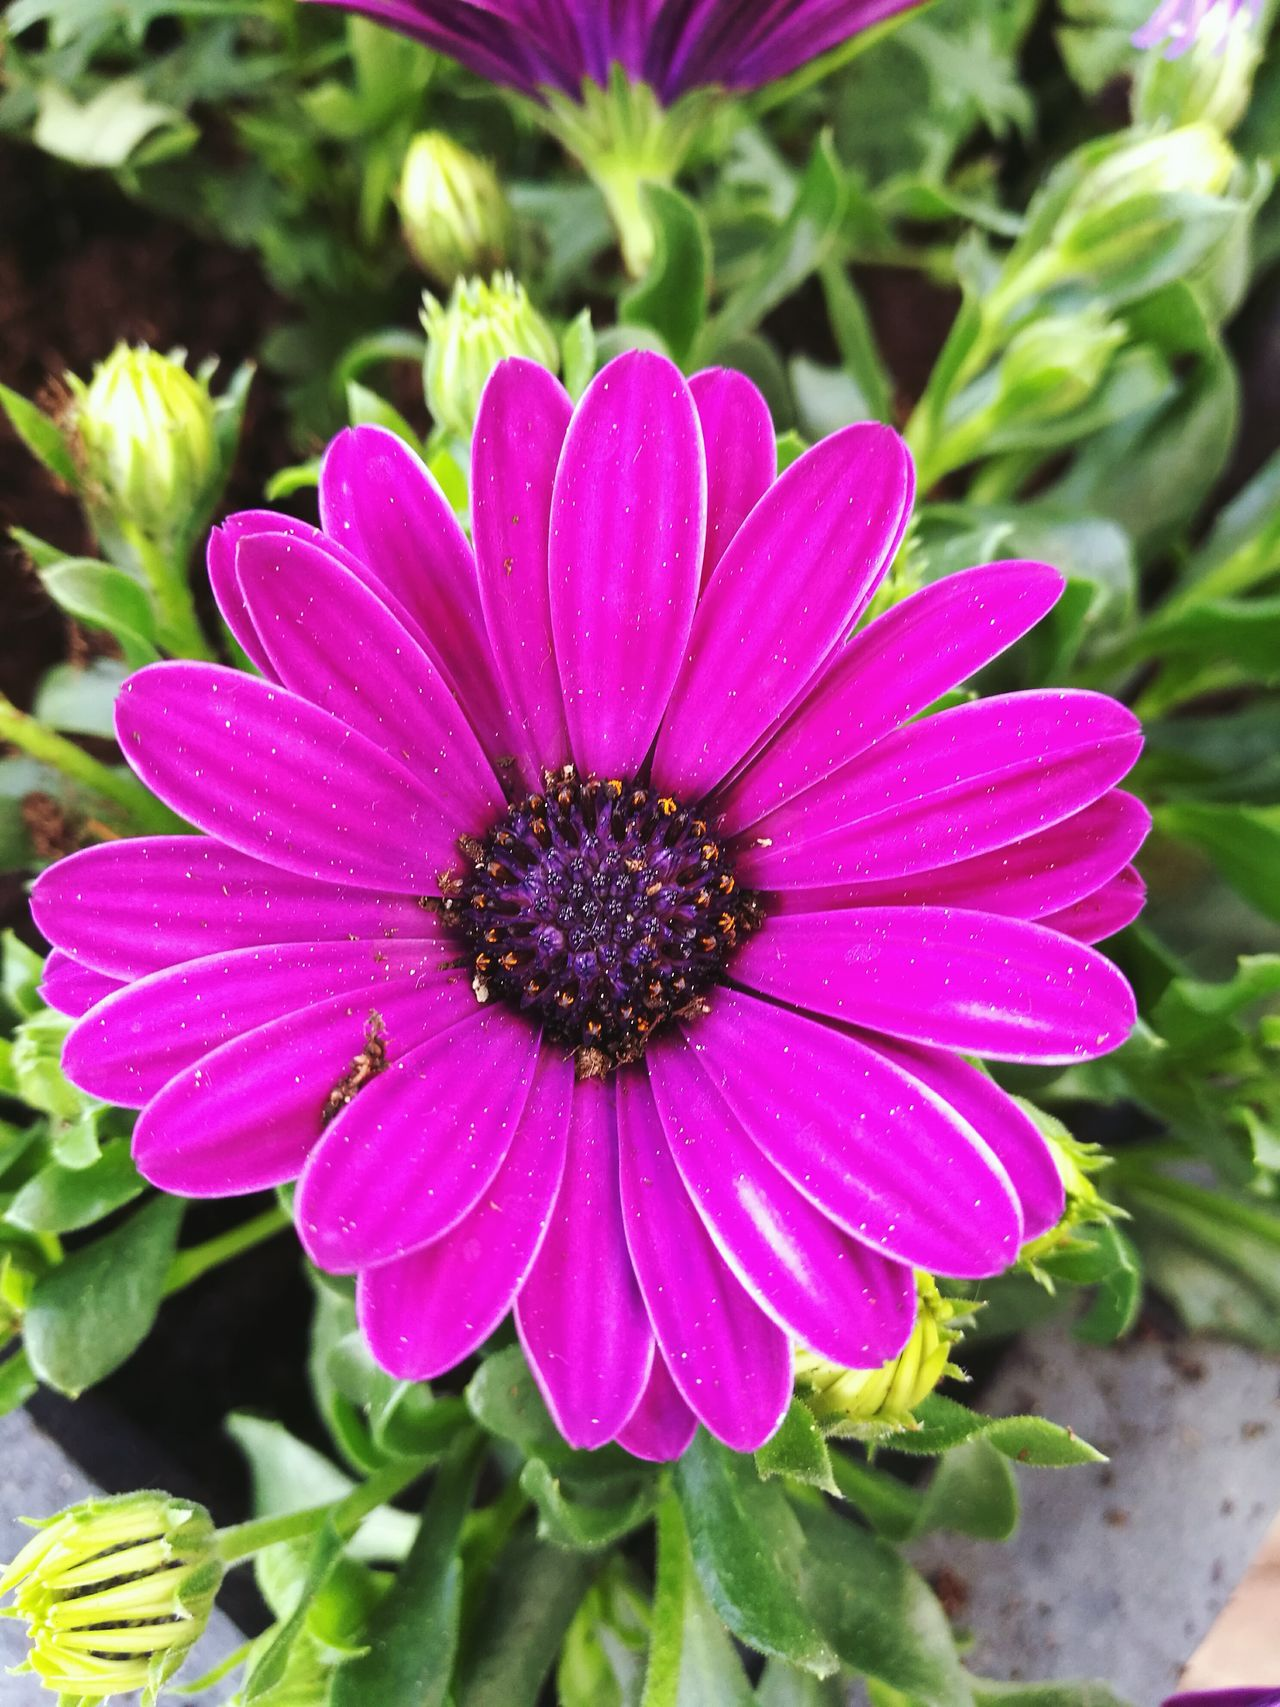 Flower Flowers Nature Photography Nature Pink Flower Photography Taking Photos Outside Summer Plant Plants Kapkörbchen Osteospermum Nature's Diversities